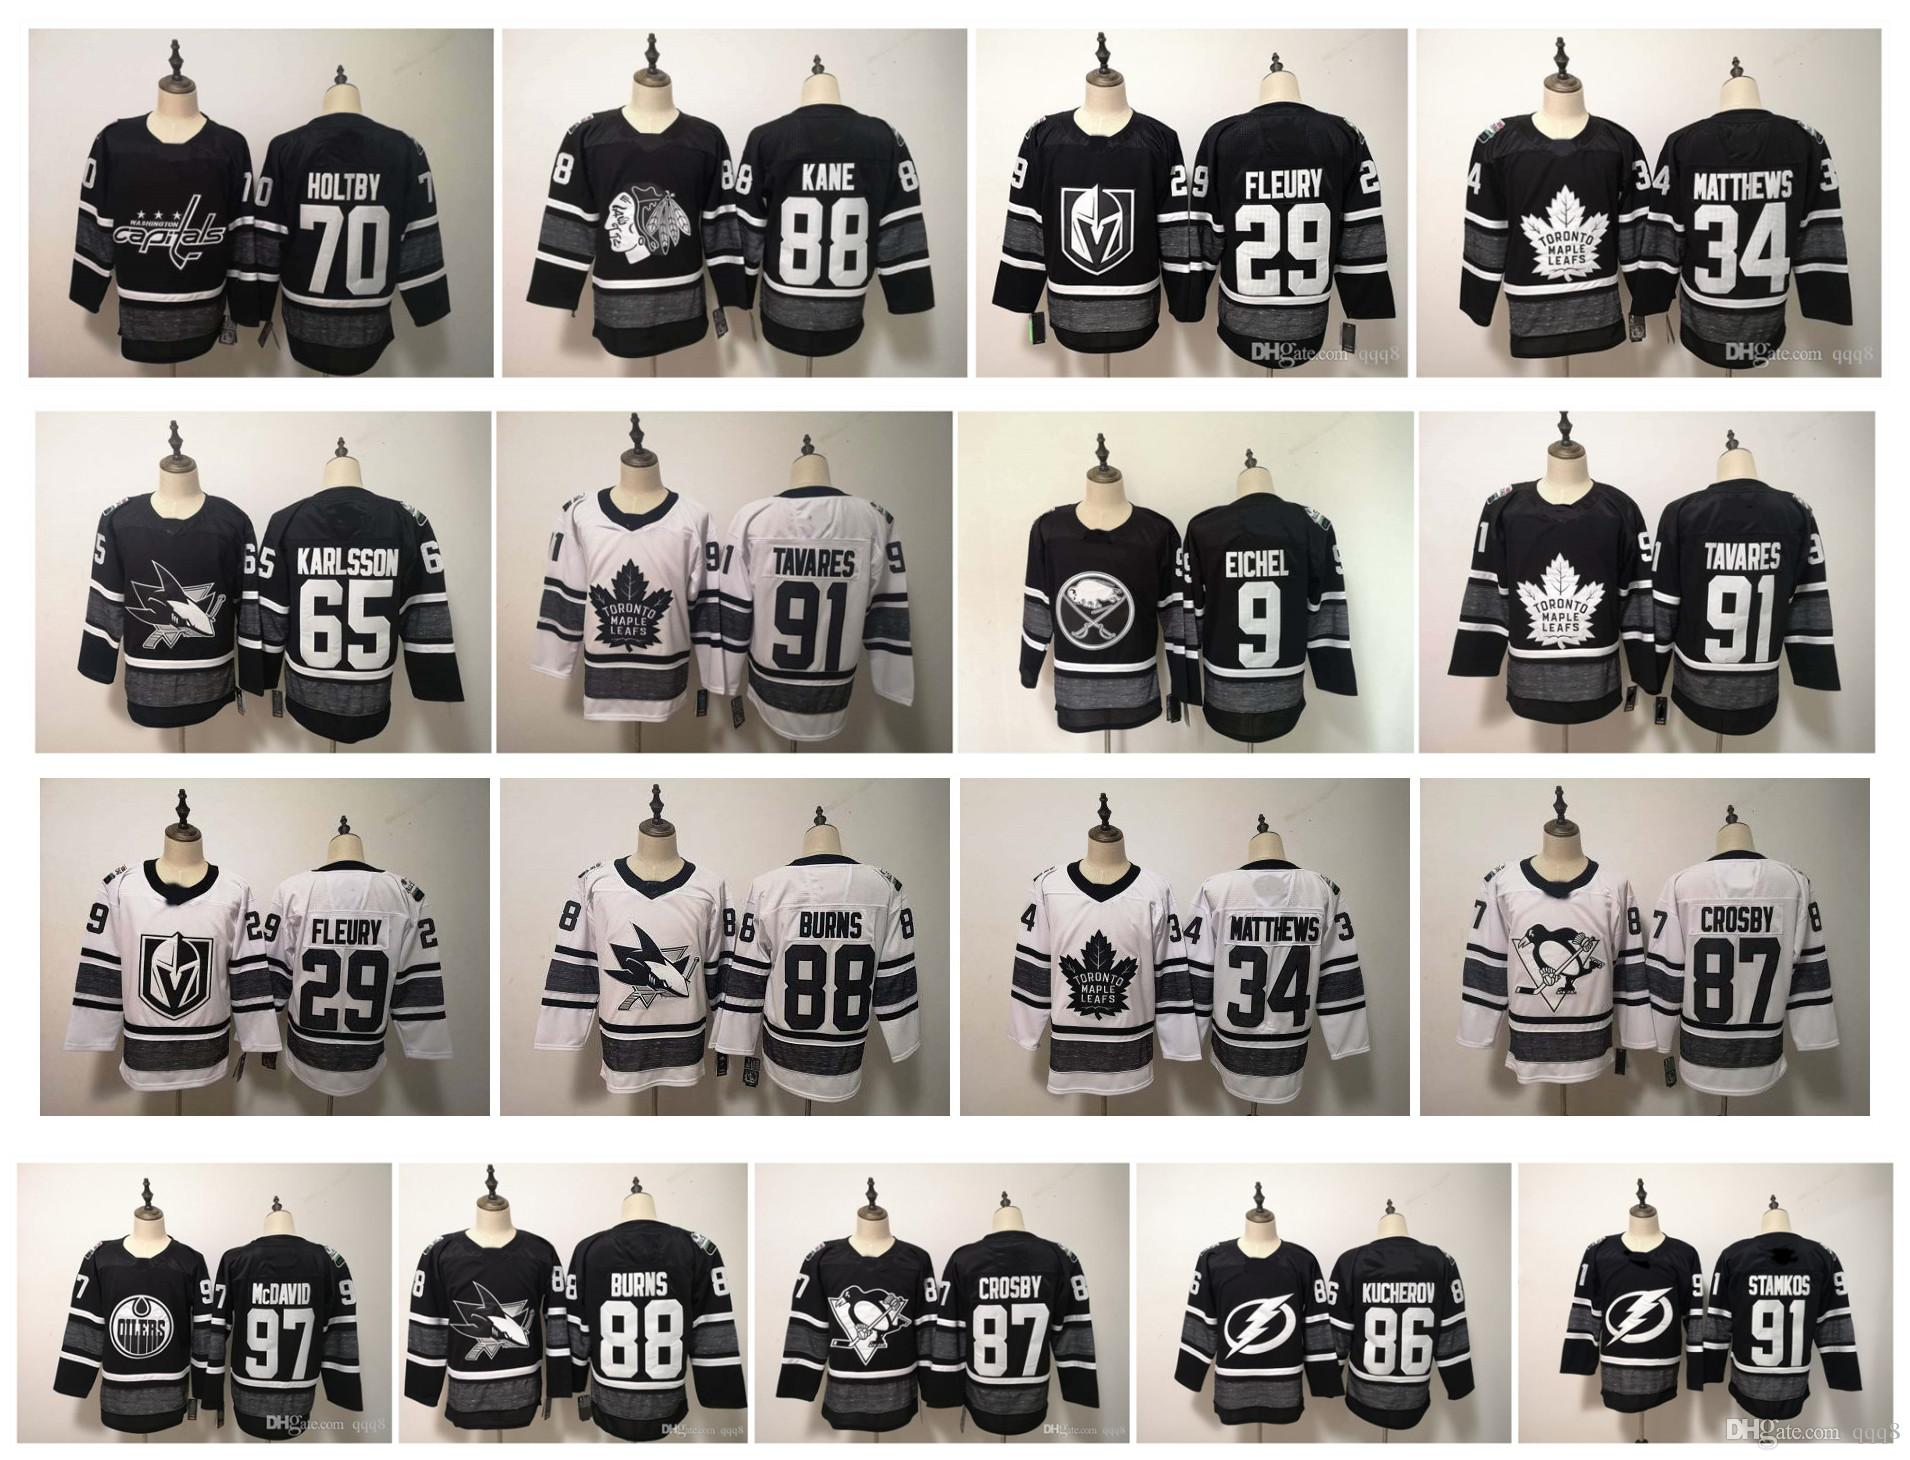 2019 2019 All Star Game NHL Jersey Karlsson Sidney Crosby Jack Eichel  Connor McDavid John Tavares Marc Andre Fleury Patrick Kane Matthews Hockey  From Qqq8 86e694f92